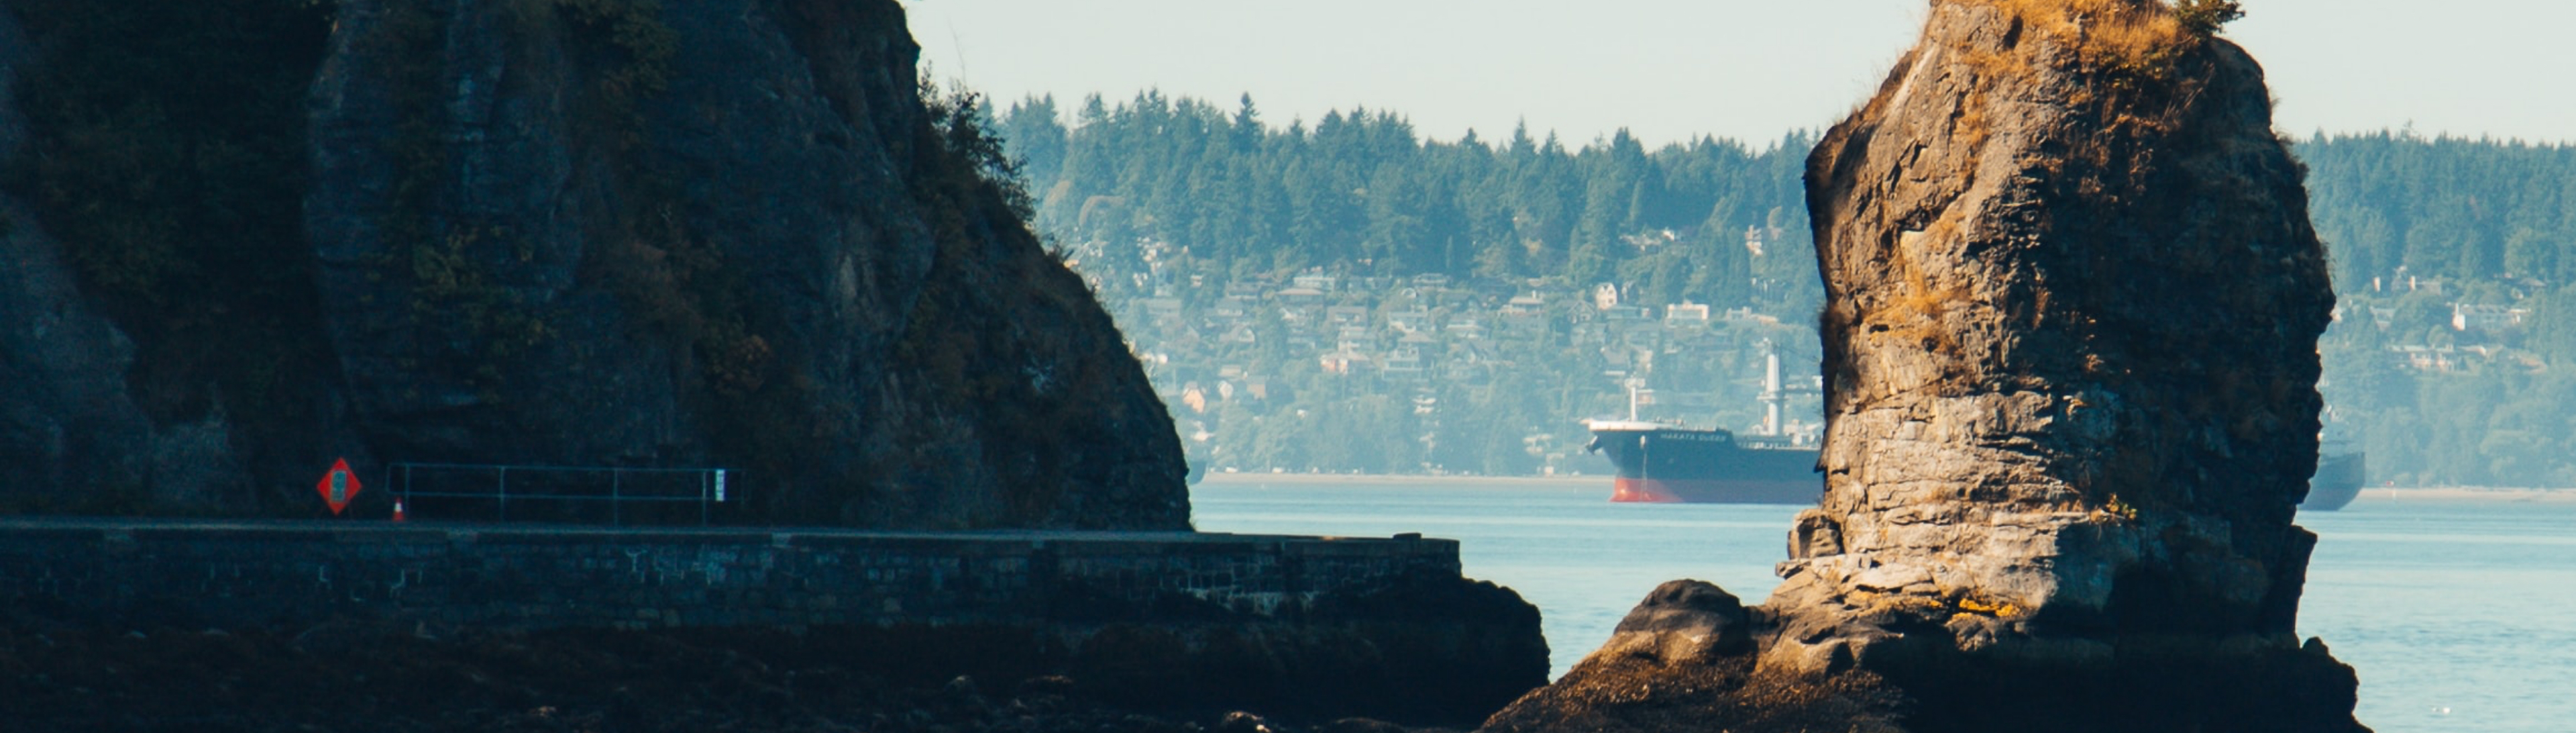 Cargo ship in Vancouver waters